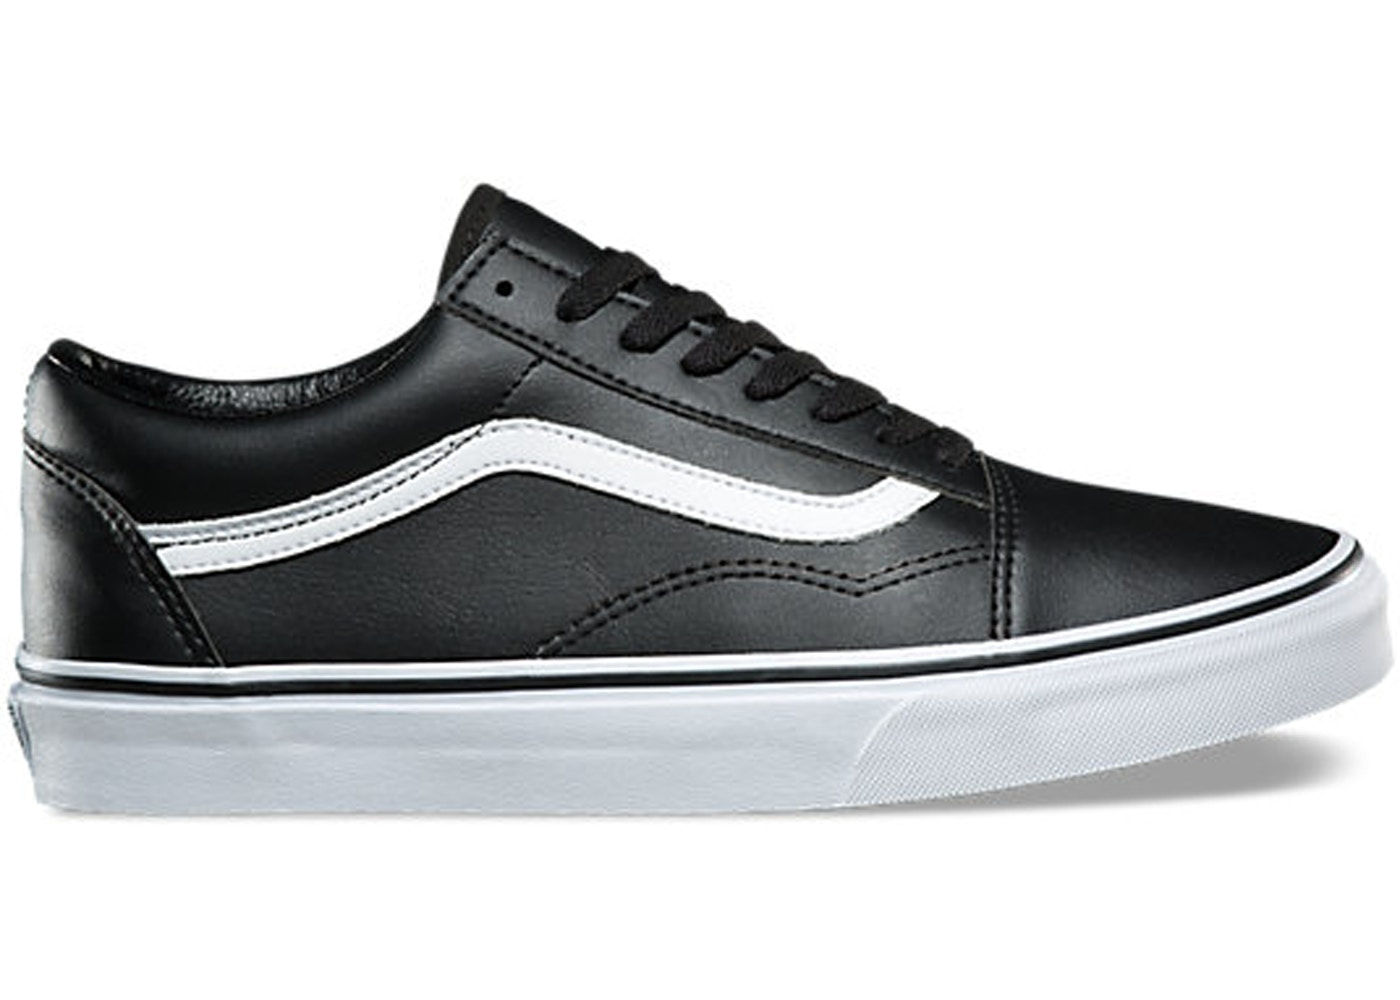 334440b1563cae ... Black White vans old skool classic sale